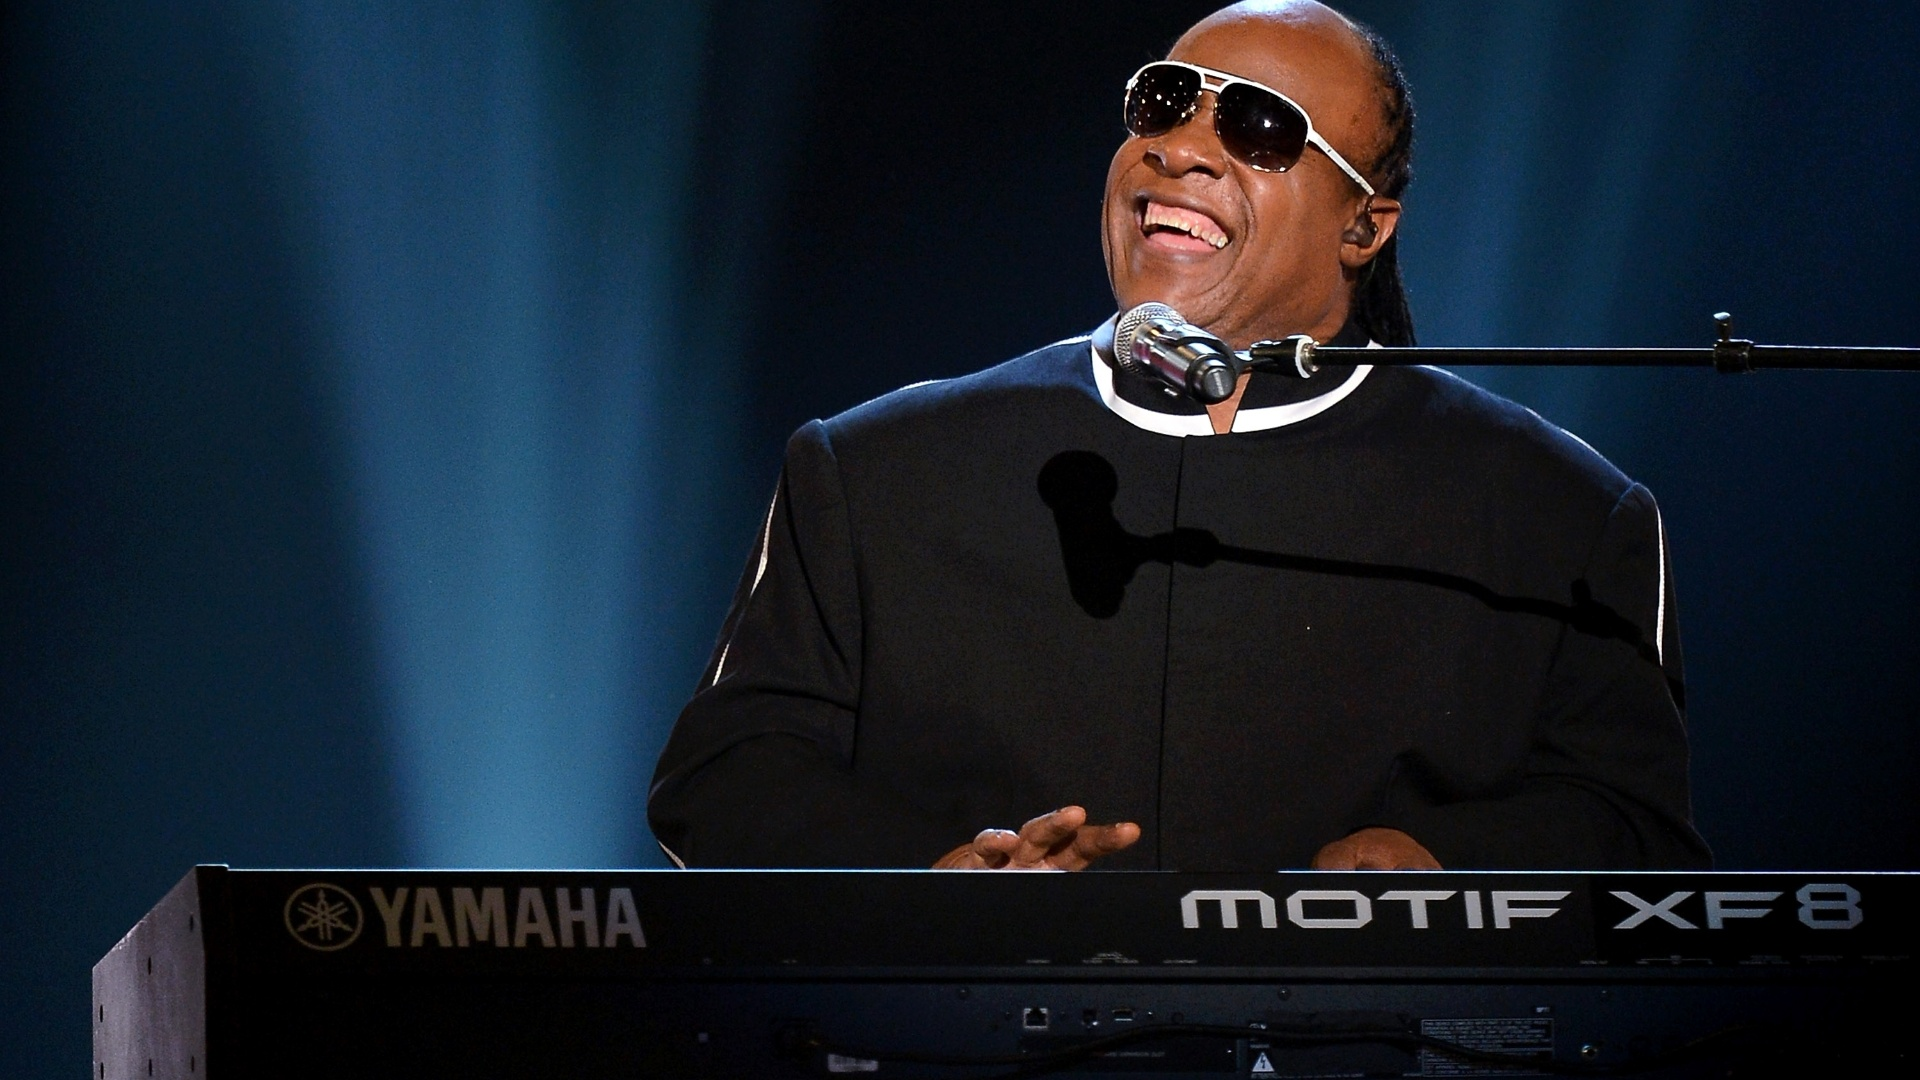 New Live Wallpapers For Iphone X Stevie Wonder Wallpapers Pictures Images